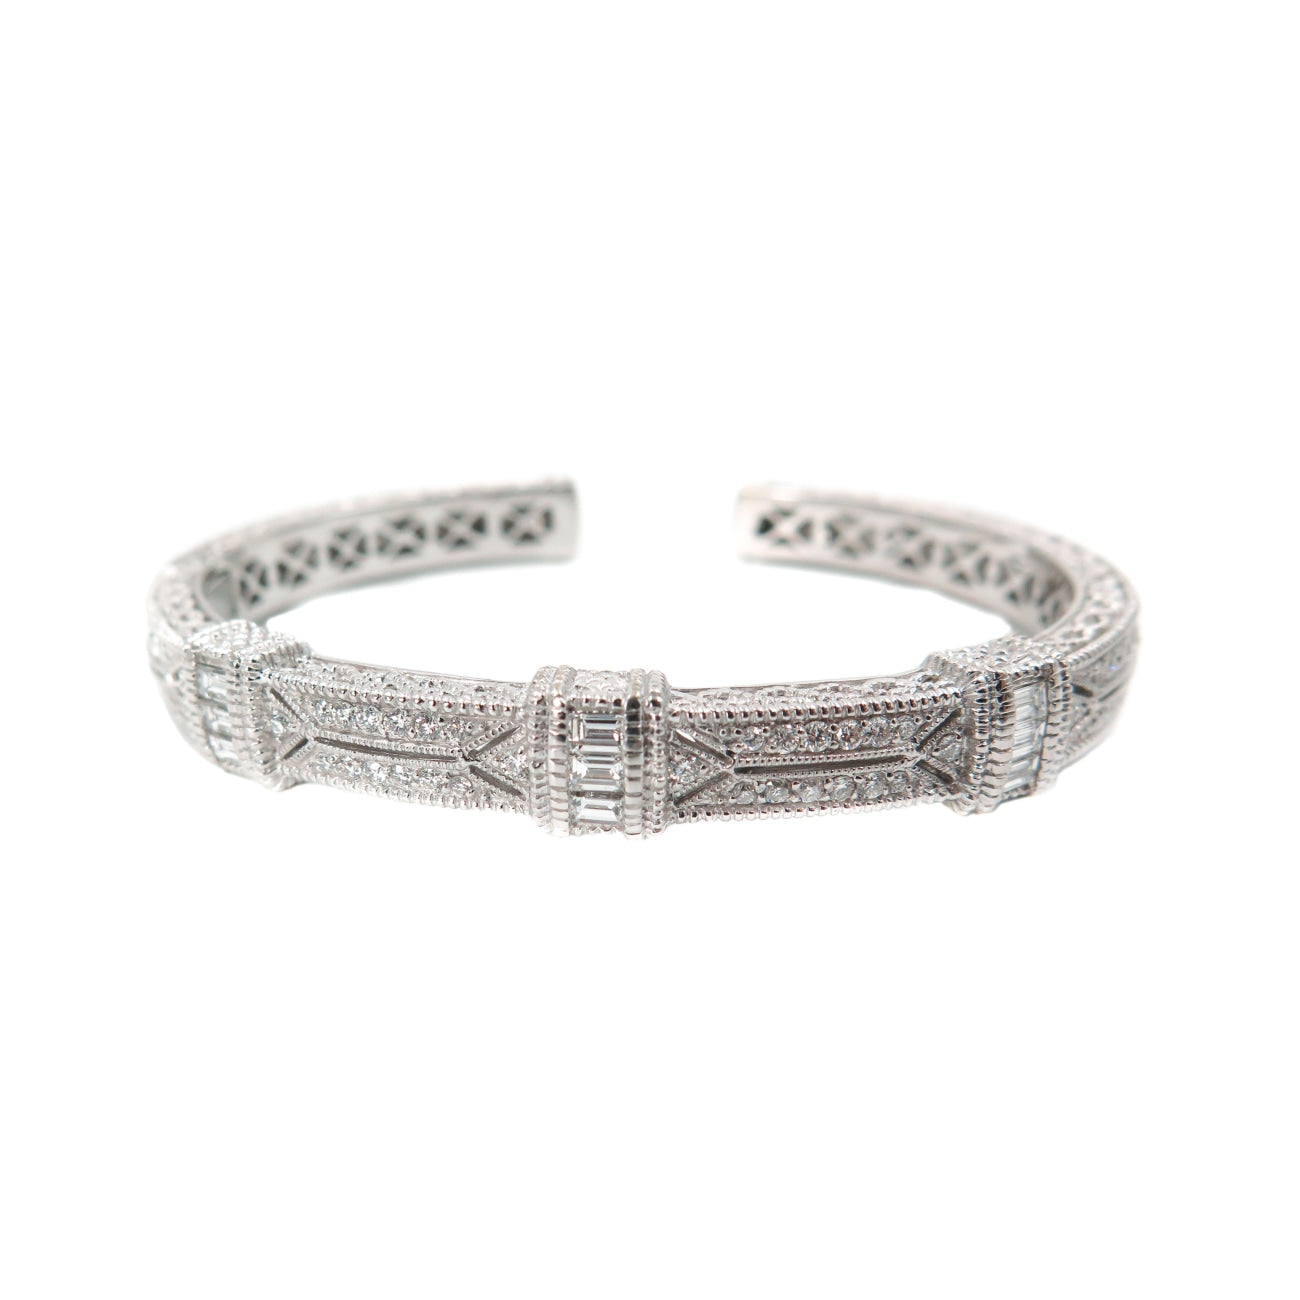 Estate Jewelry Estate Jewelry - Judith Ripka Pia Diamond Pave White Gold Cuff Bracelet | Manfredi Jewels